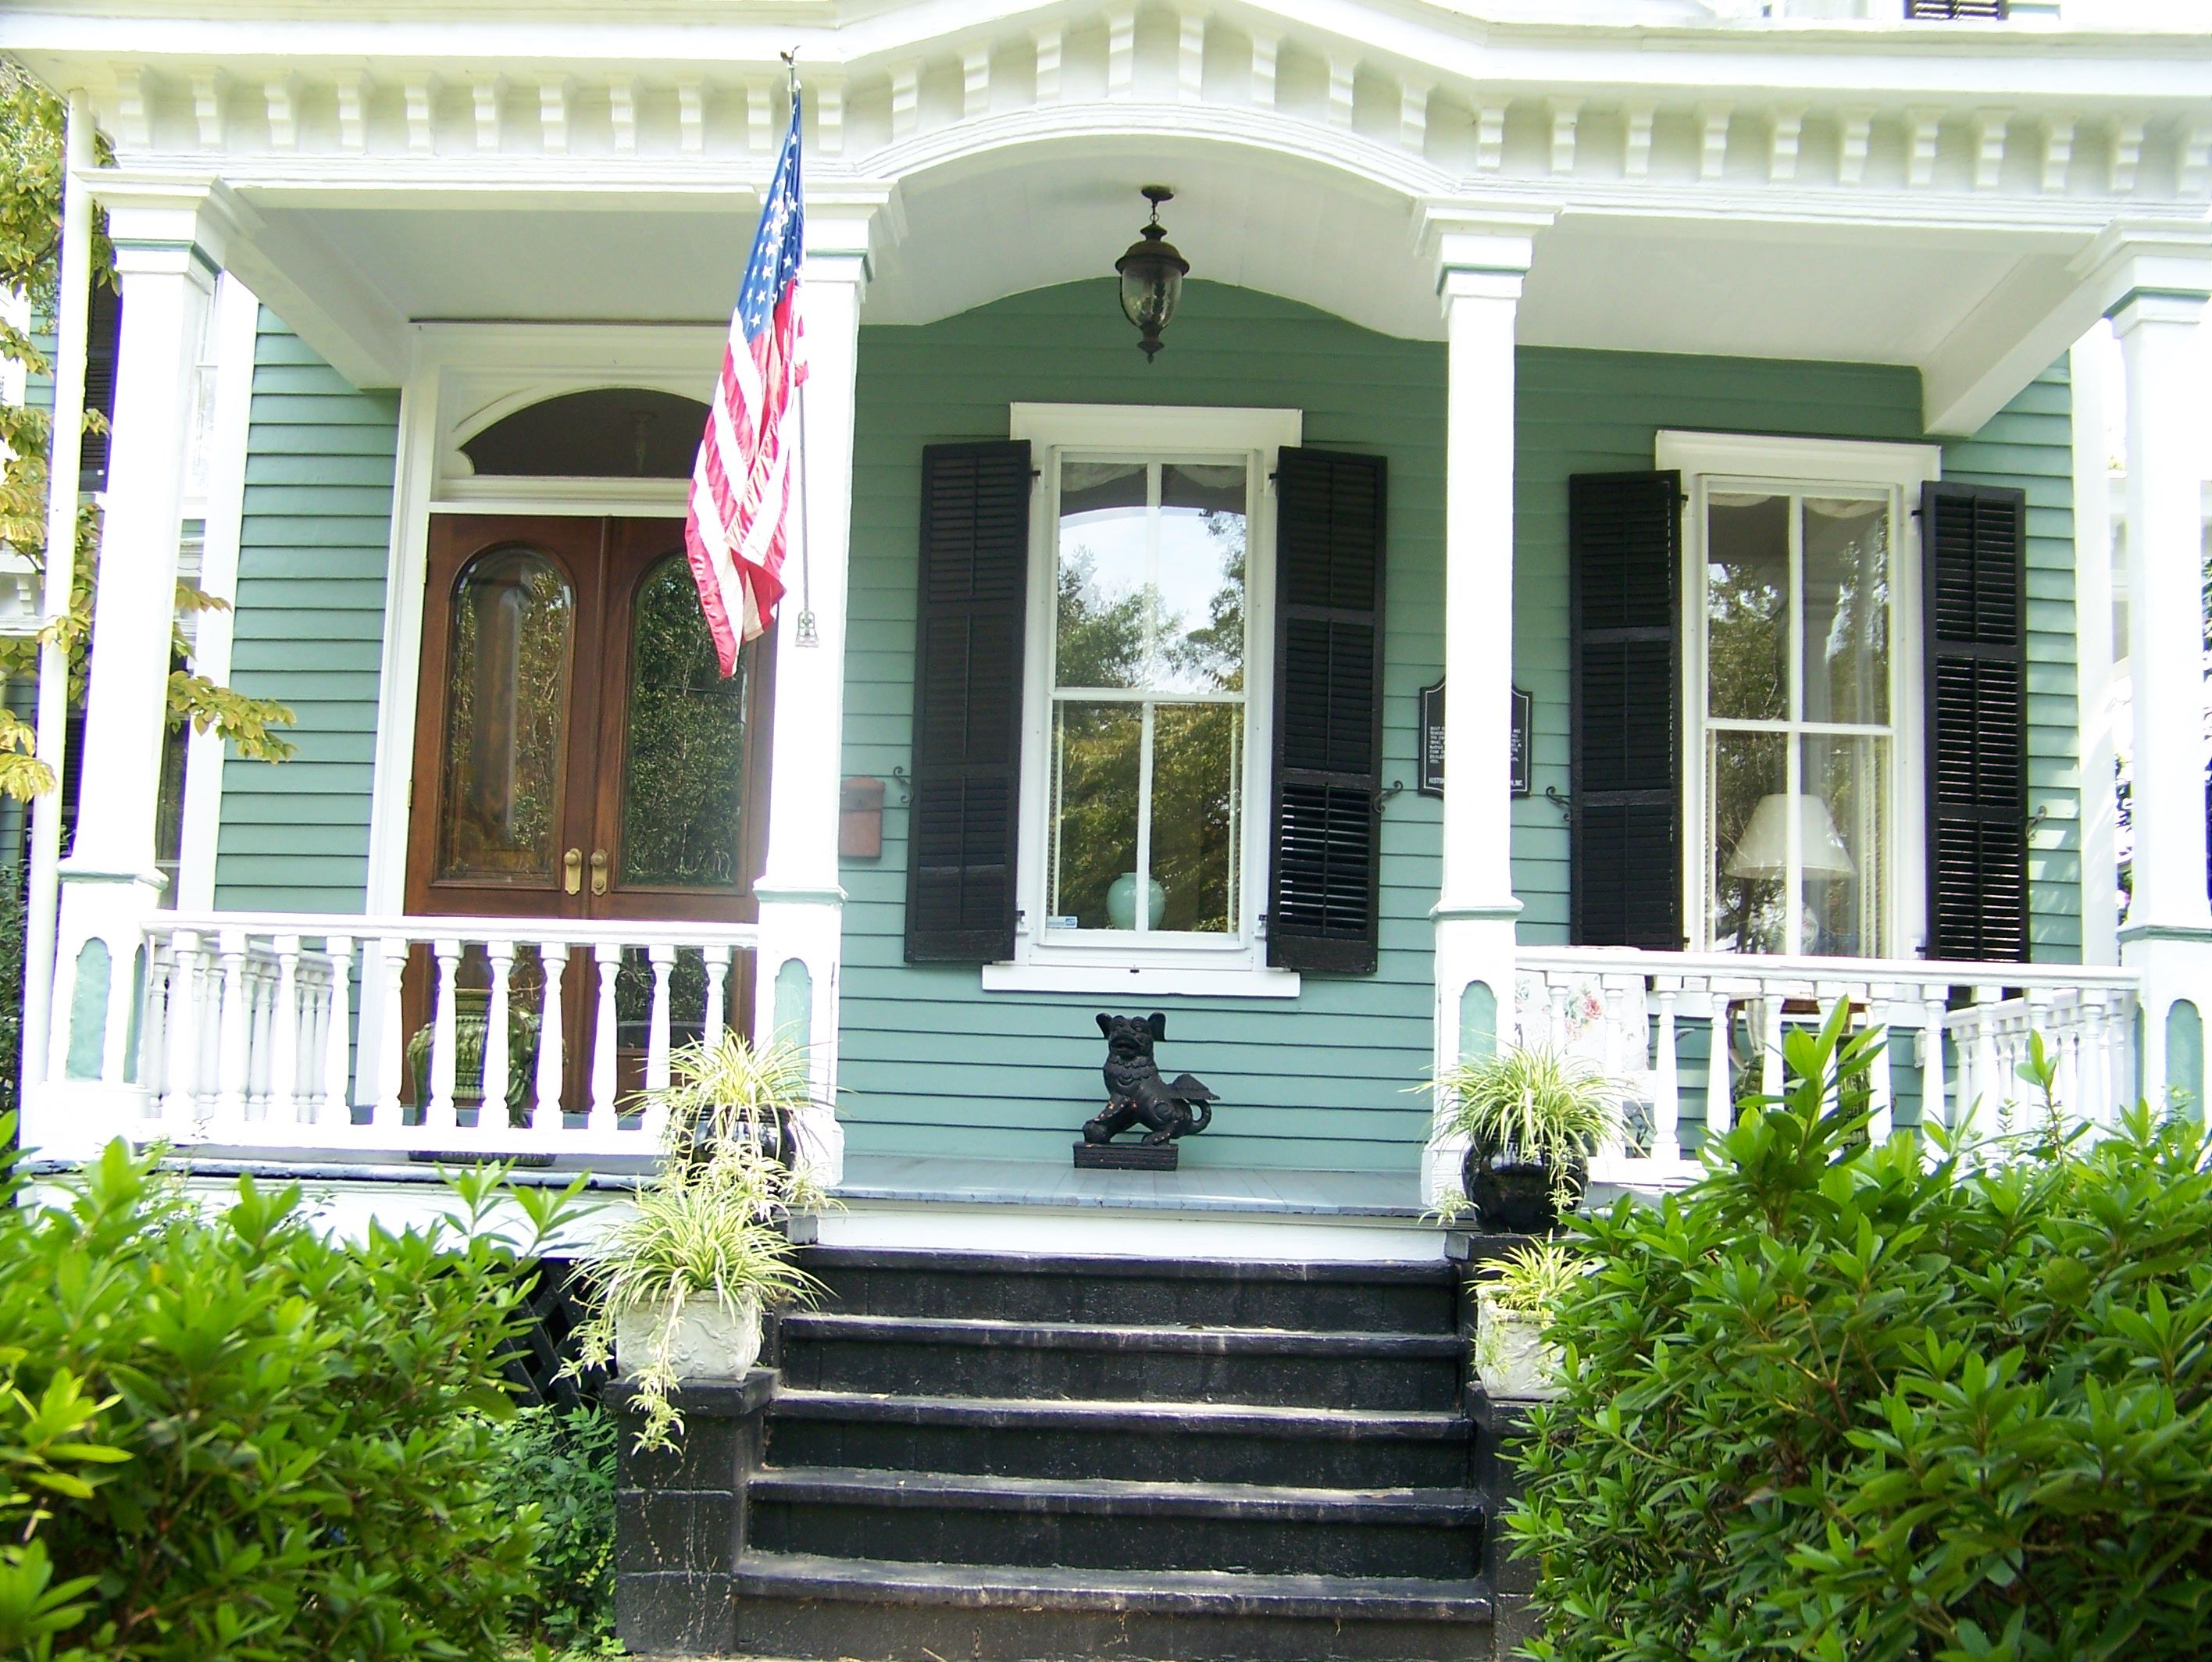 Green Outdoor Paint Part - 45: Green + White + Black Trim